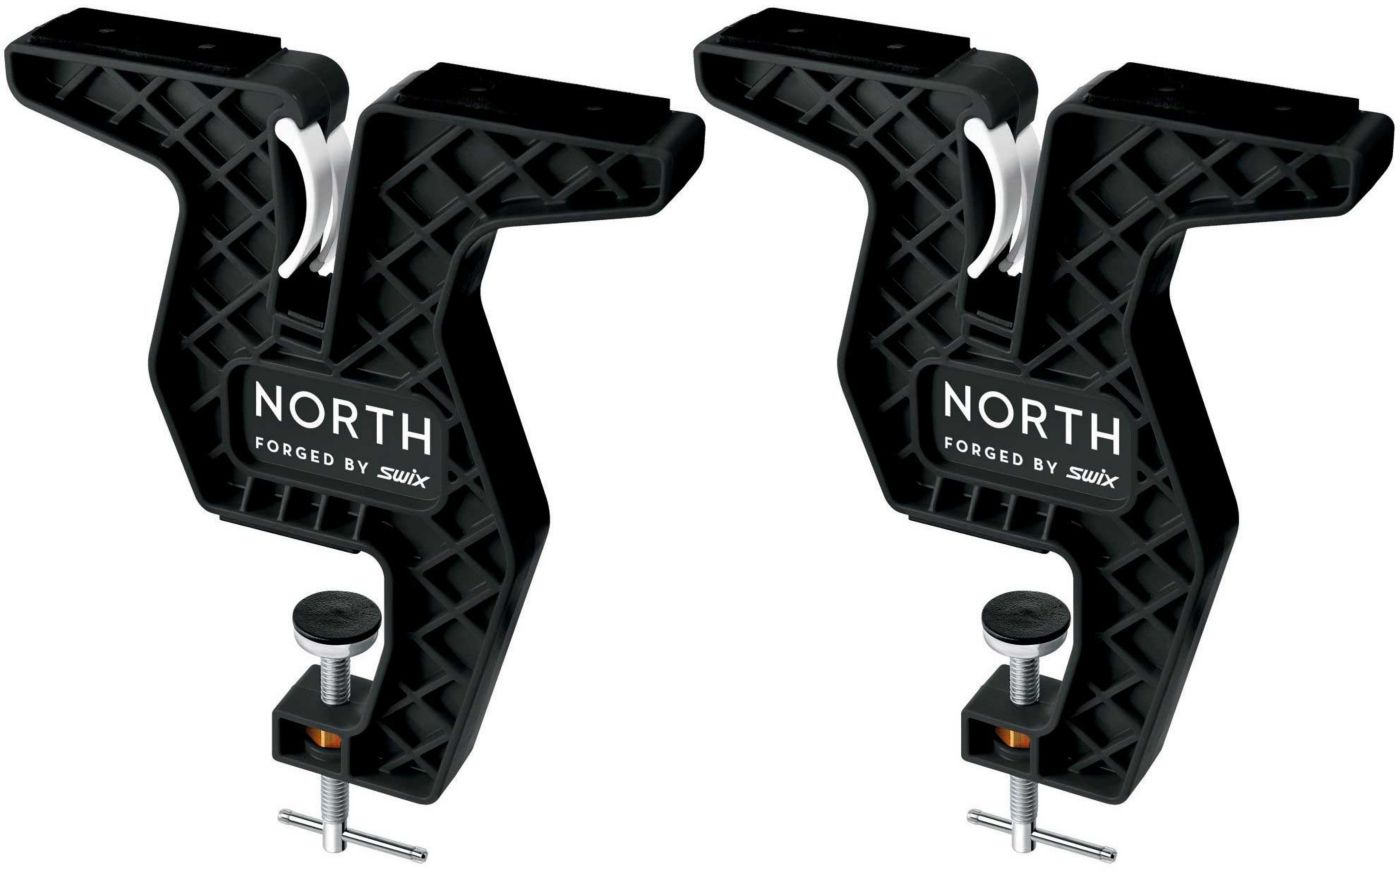 North by Swix Snowboard Vise Clamps